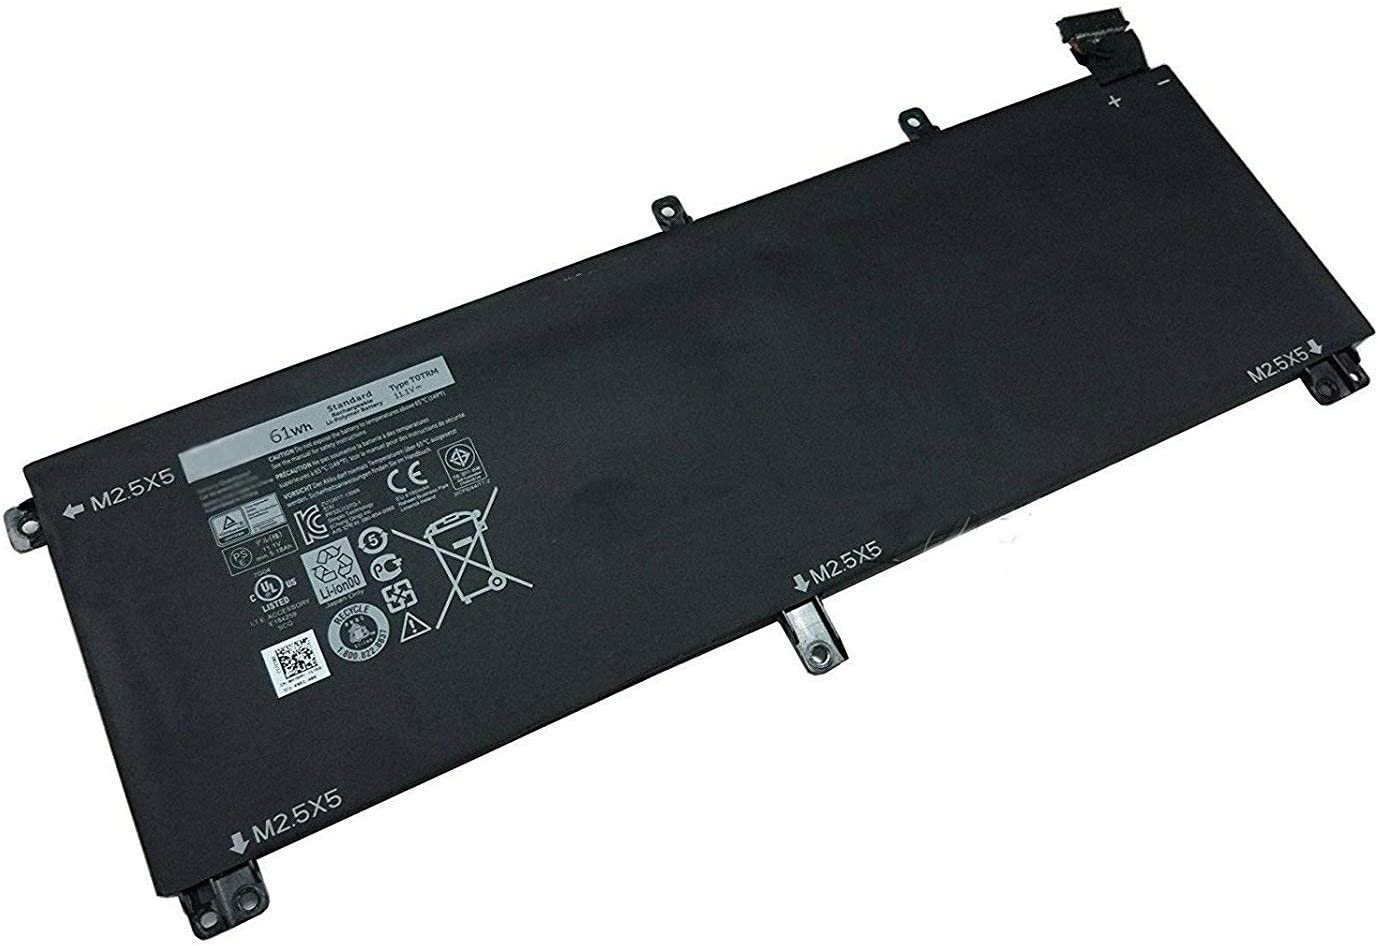 TanDirect New T0TRM Replacement Laptop Battery Compatible with Dell XPS 15 9530 Precision M3800 TOTRM H76MV 7D1WJ (61WH 11.1V)